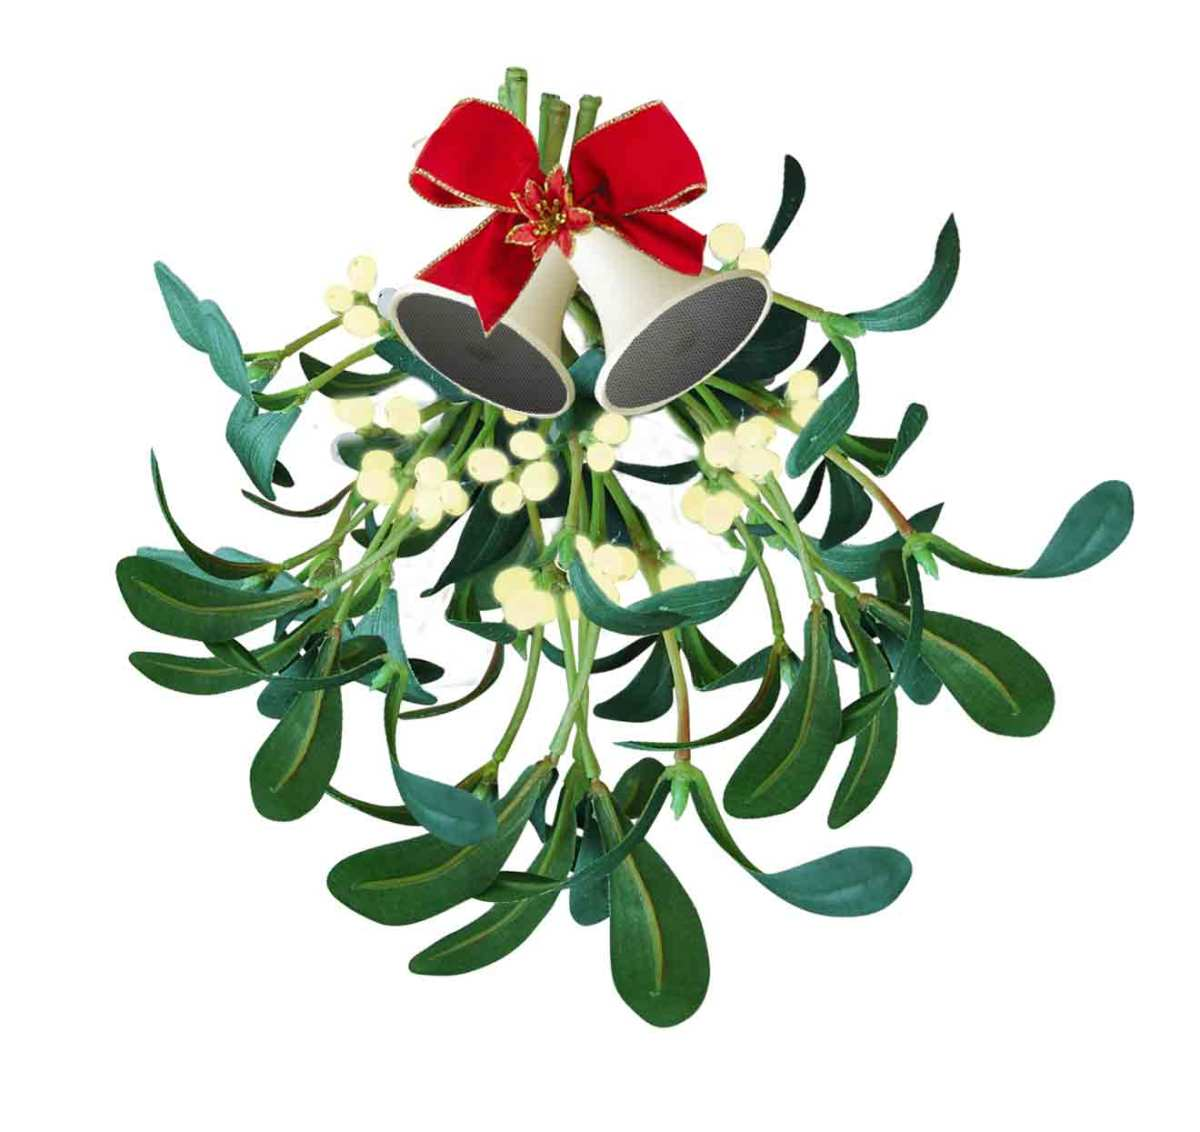 Mistletoe, another pre-Christian favourite for Christmas. How did kissing under the mistletoe get to be associated with a Christian festival?